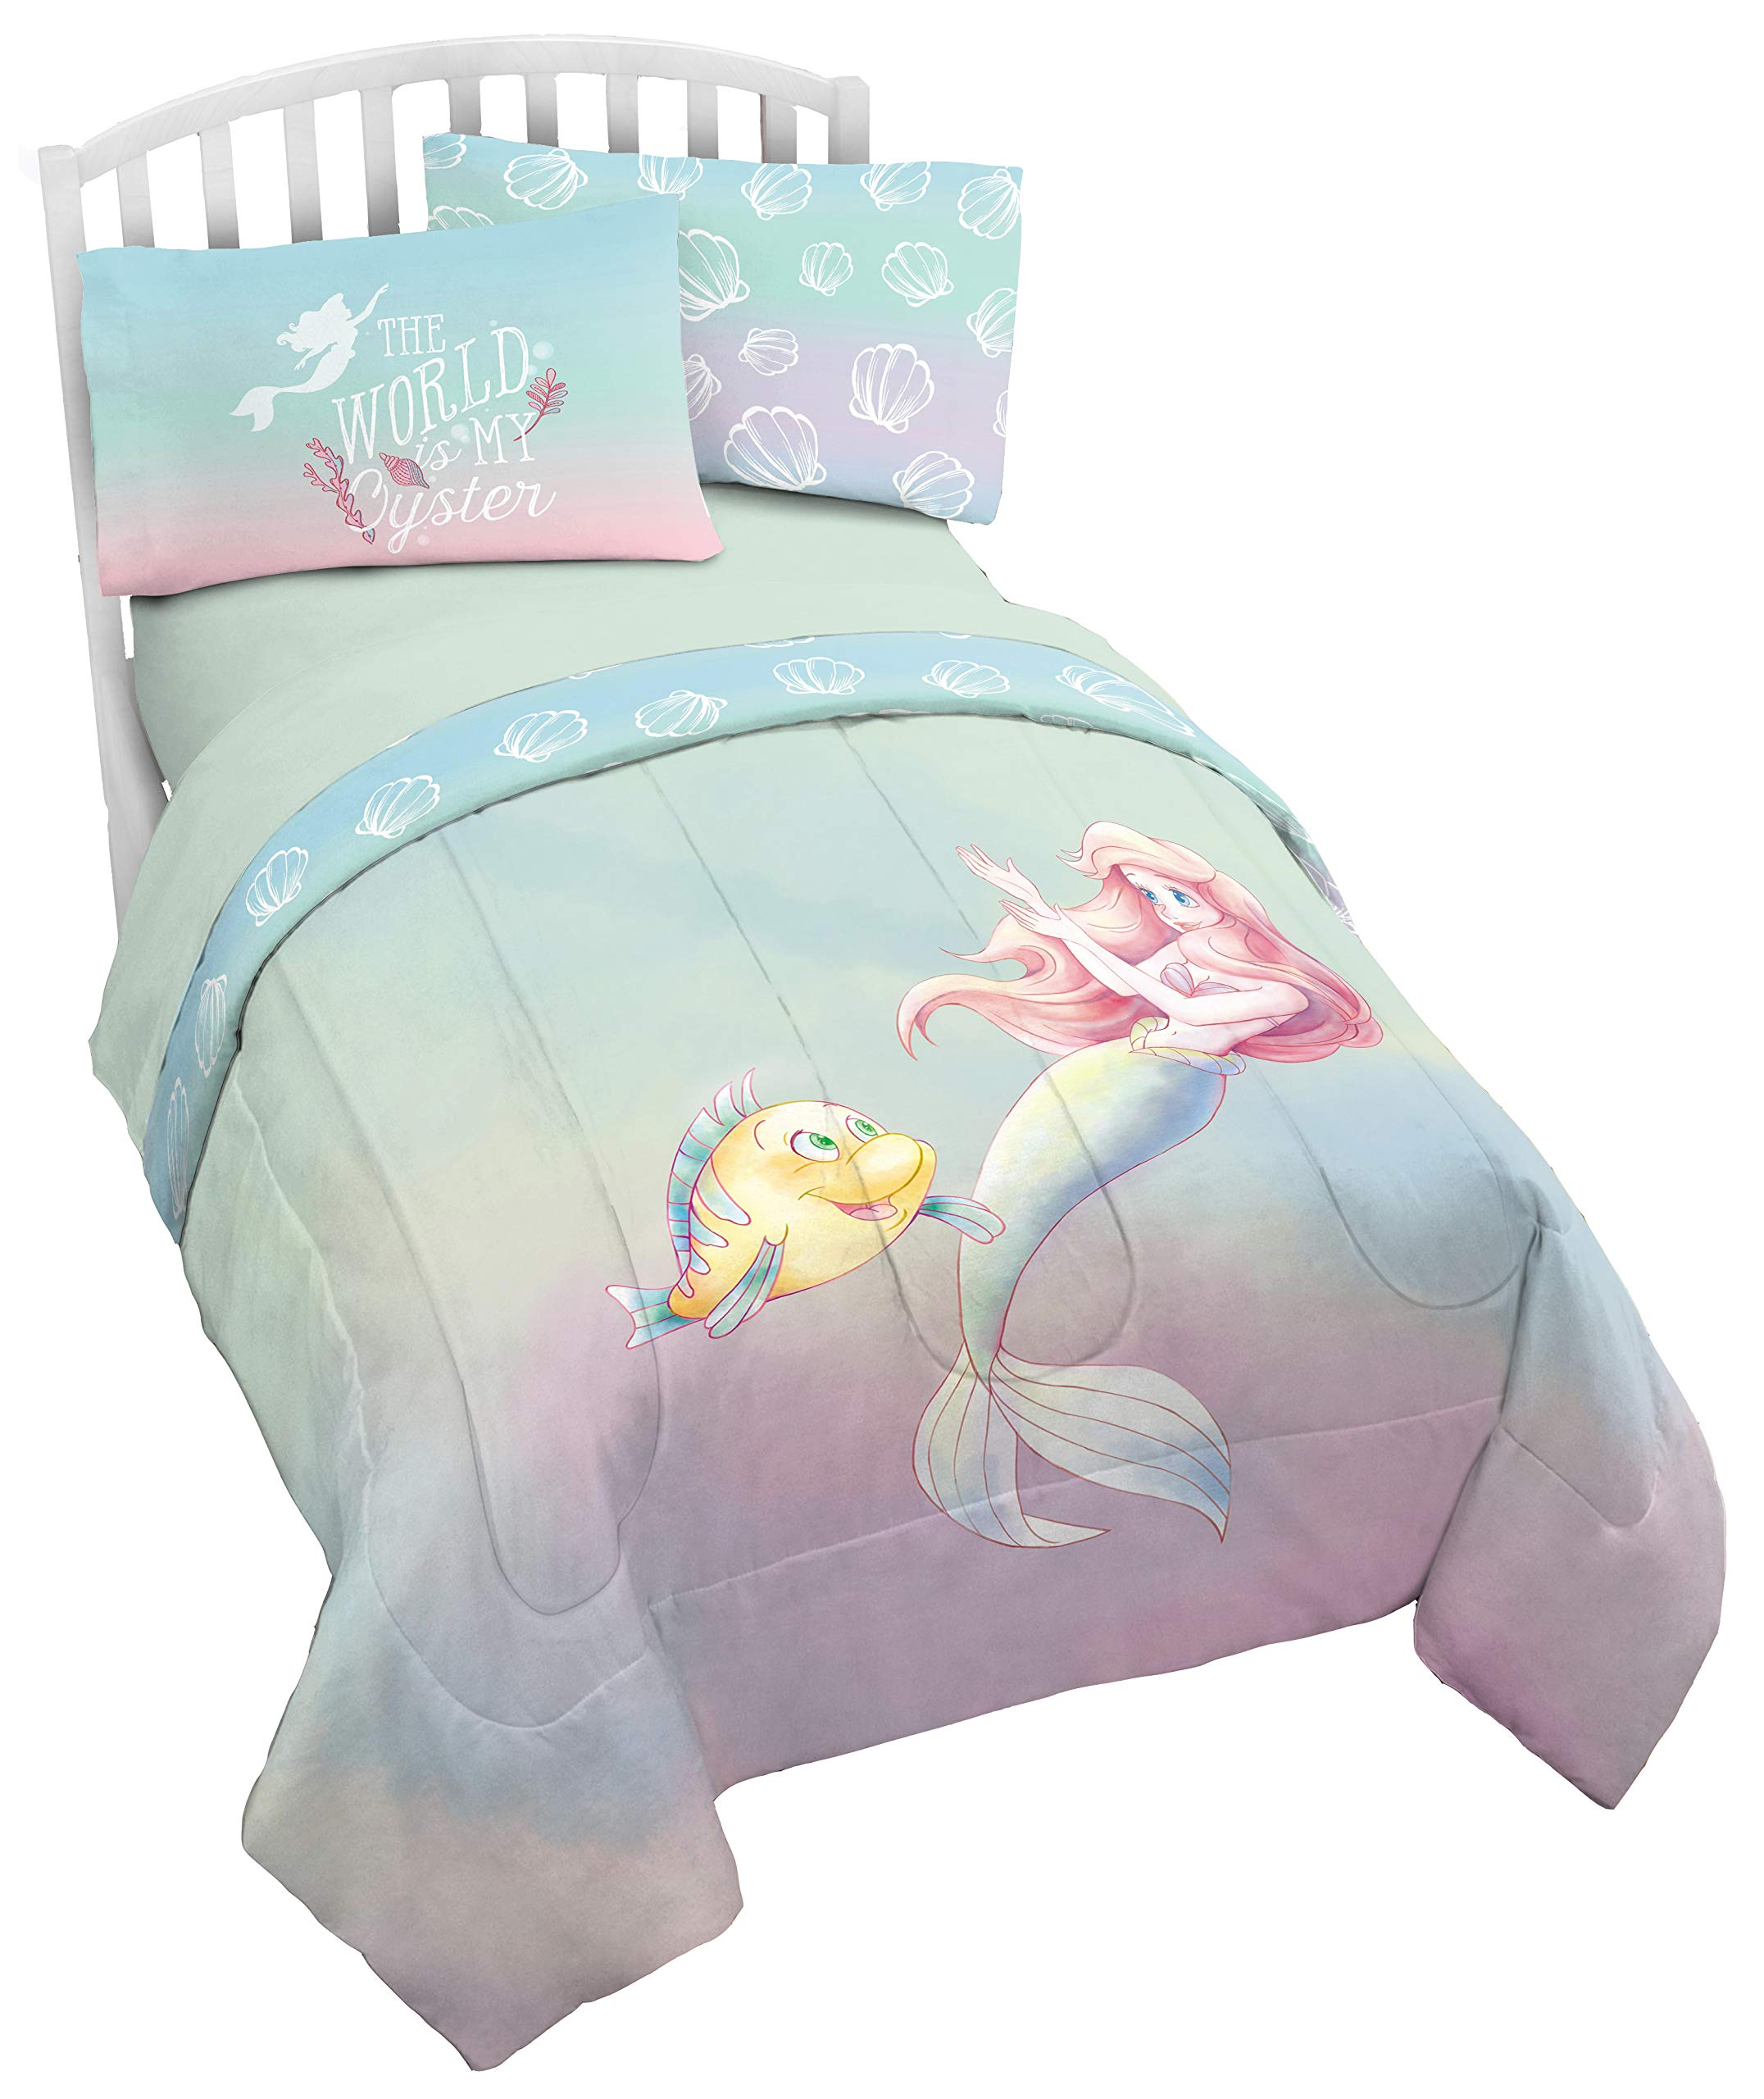 Disney The Little Mermaid Rainbow Full/Queen Comforter & Pillowcase Set - Super Soft Kids Reversible Bedding Features Ariel - Fade Resistant Polyester Microfiver Fill (Official Disney Product) by Jay Franco